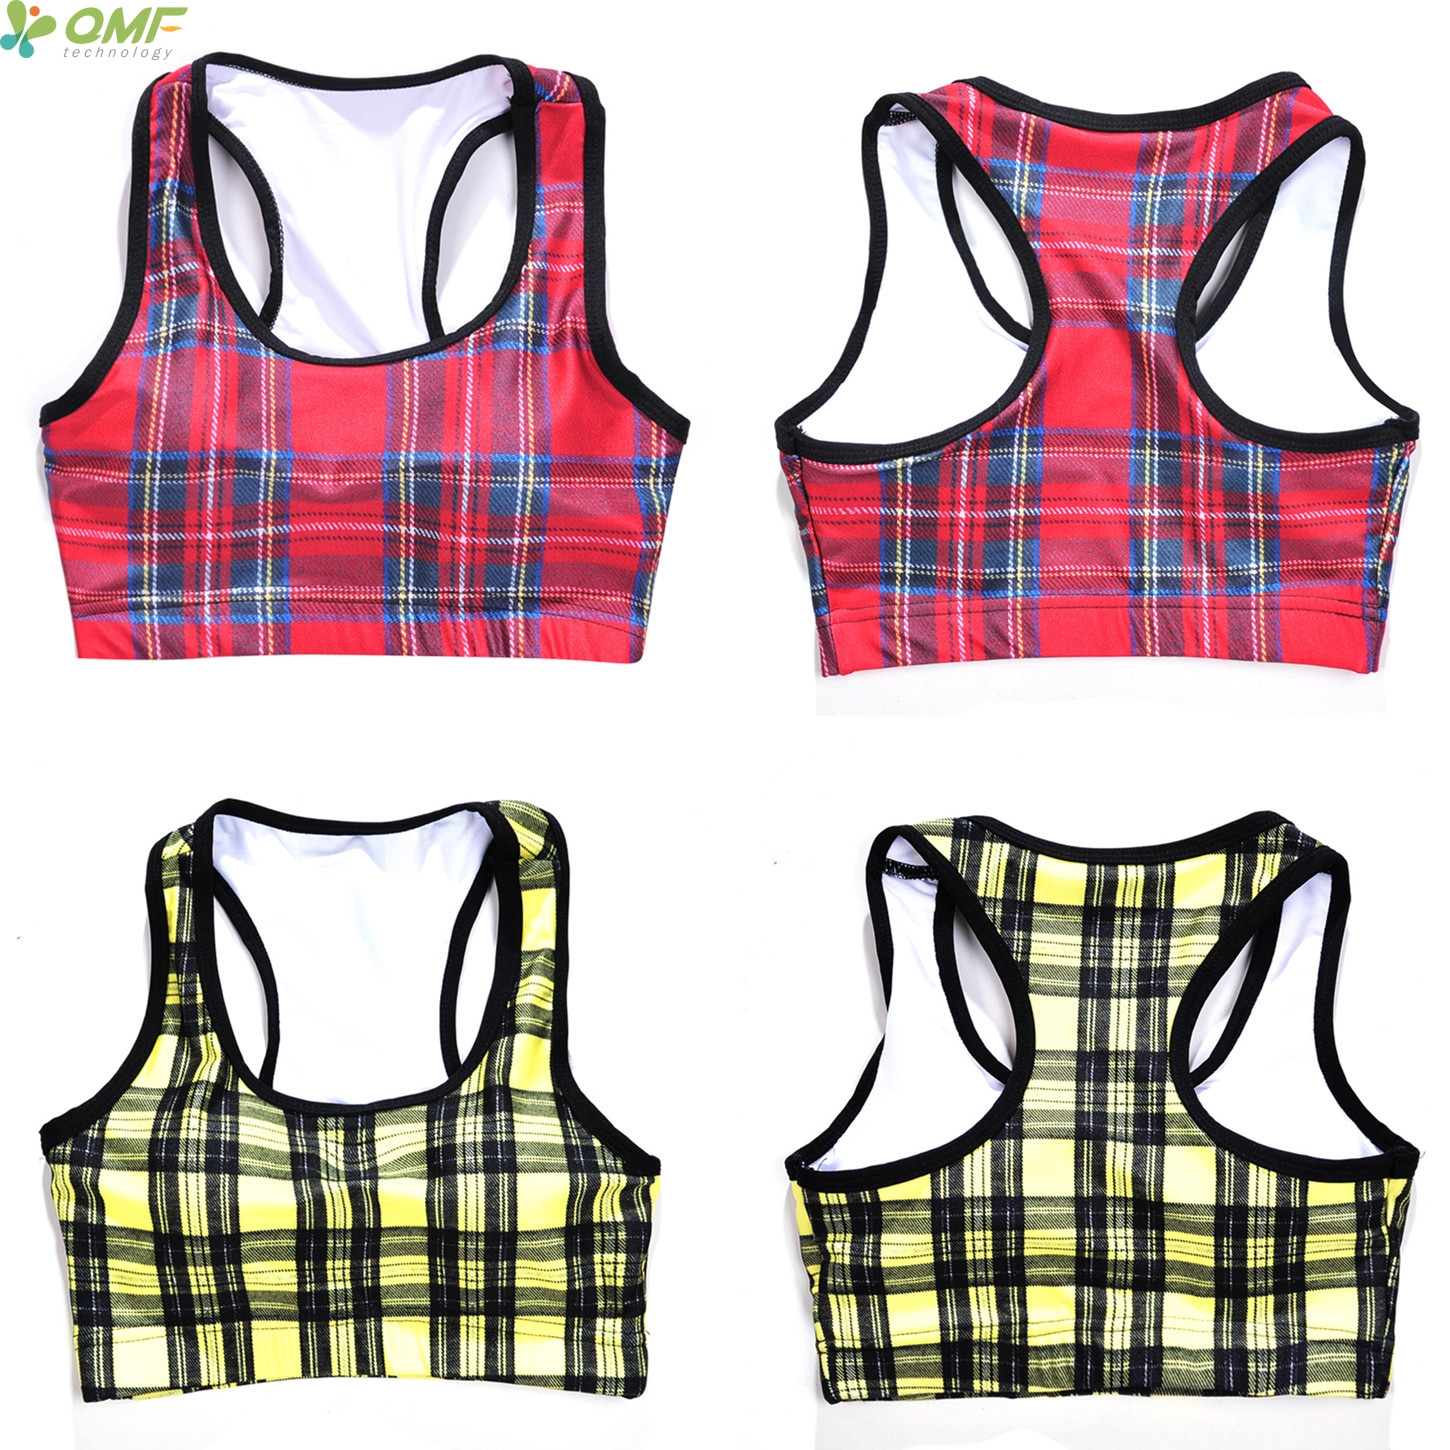 0bd81dfe37bfd Red Plaids Tartan Design Sports Running Bras Yellow Gold Gingham Plaid Yoga  Bras Women Fitness Check Pattern Bra Padded